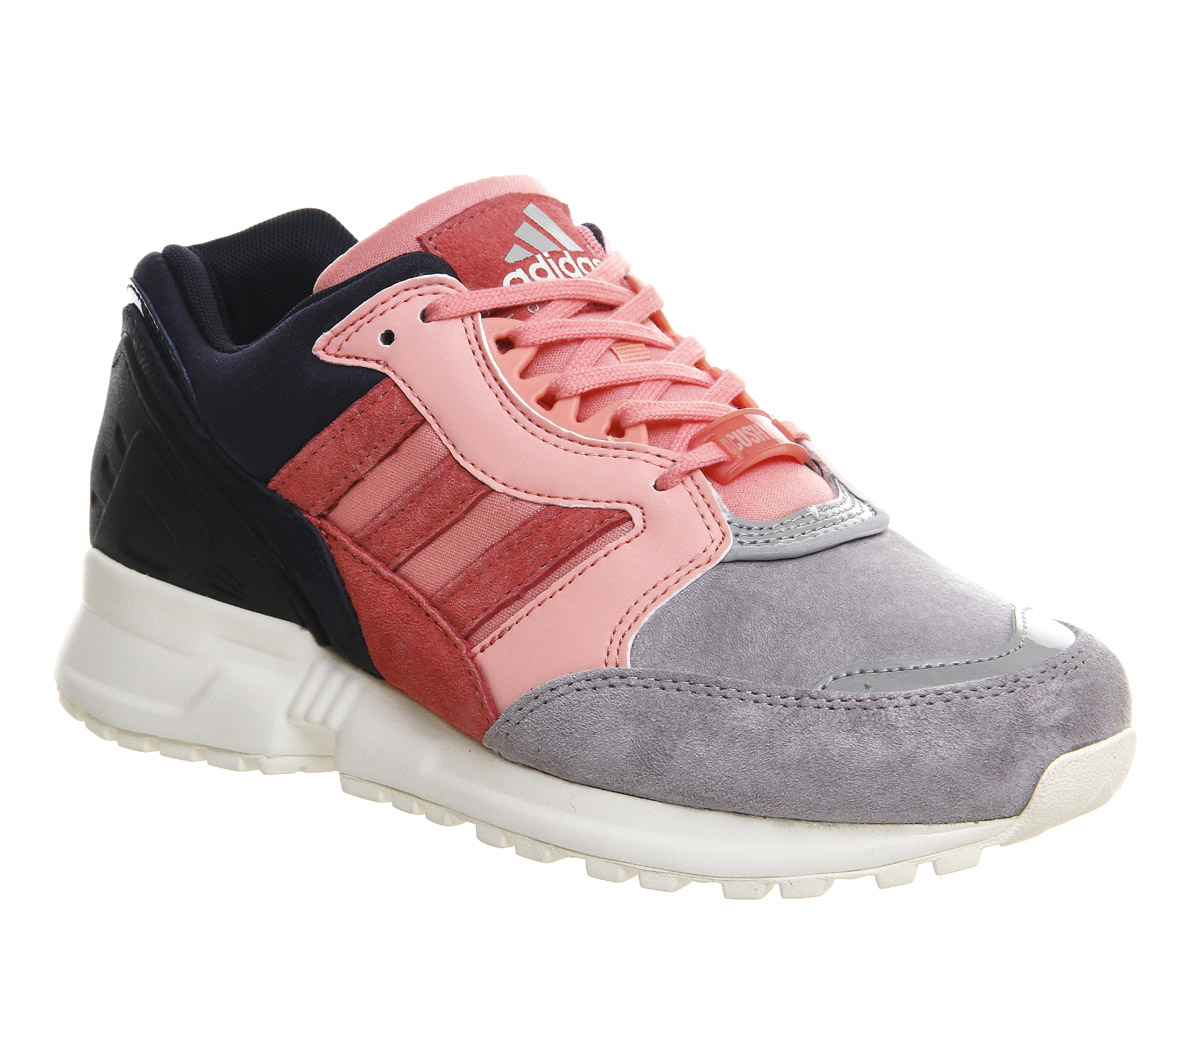 adidas shoes pink and grey los granados apartment co uk